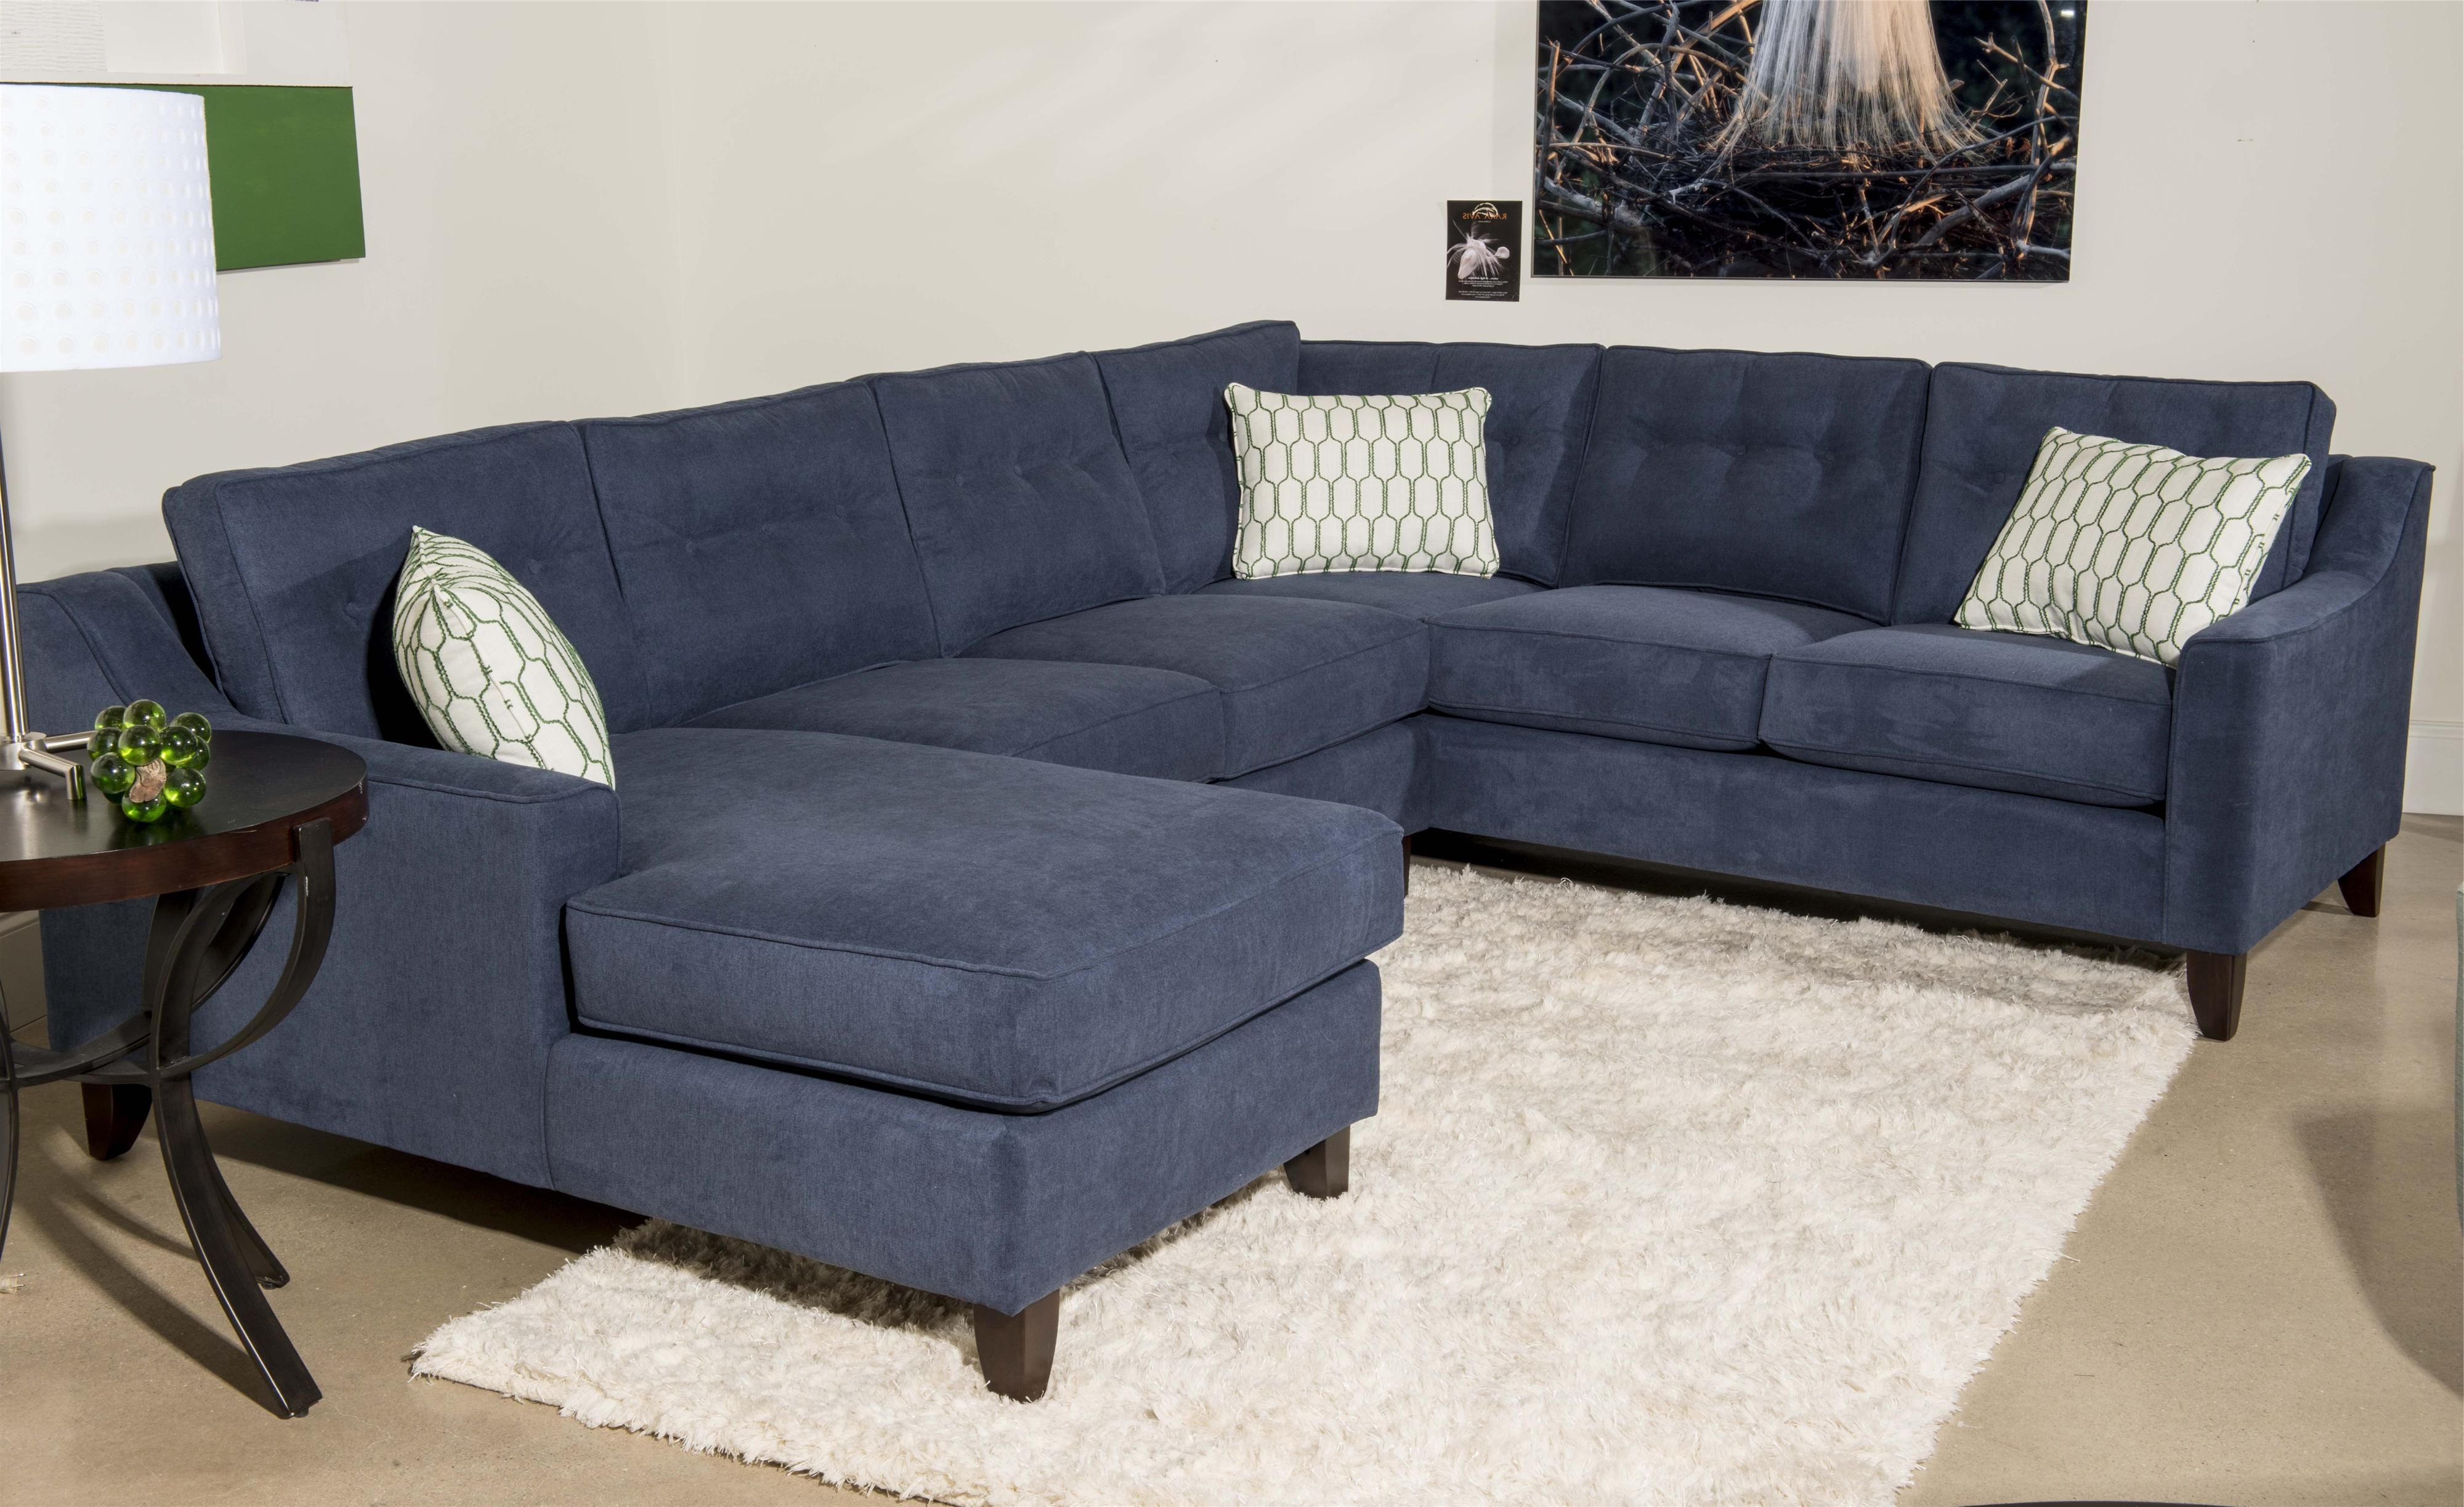 Klaussner Audrina Contemporary 3 Piece Sectional Sofa With Chaise regarding Famous 3 Piece Sectional Sleeper Sofas